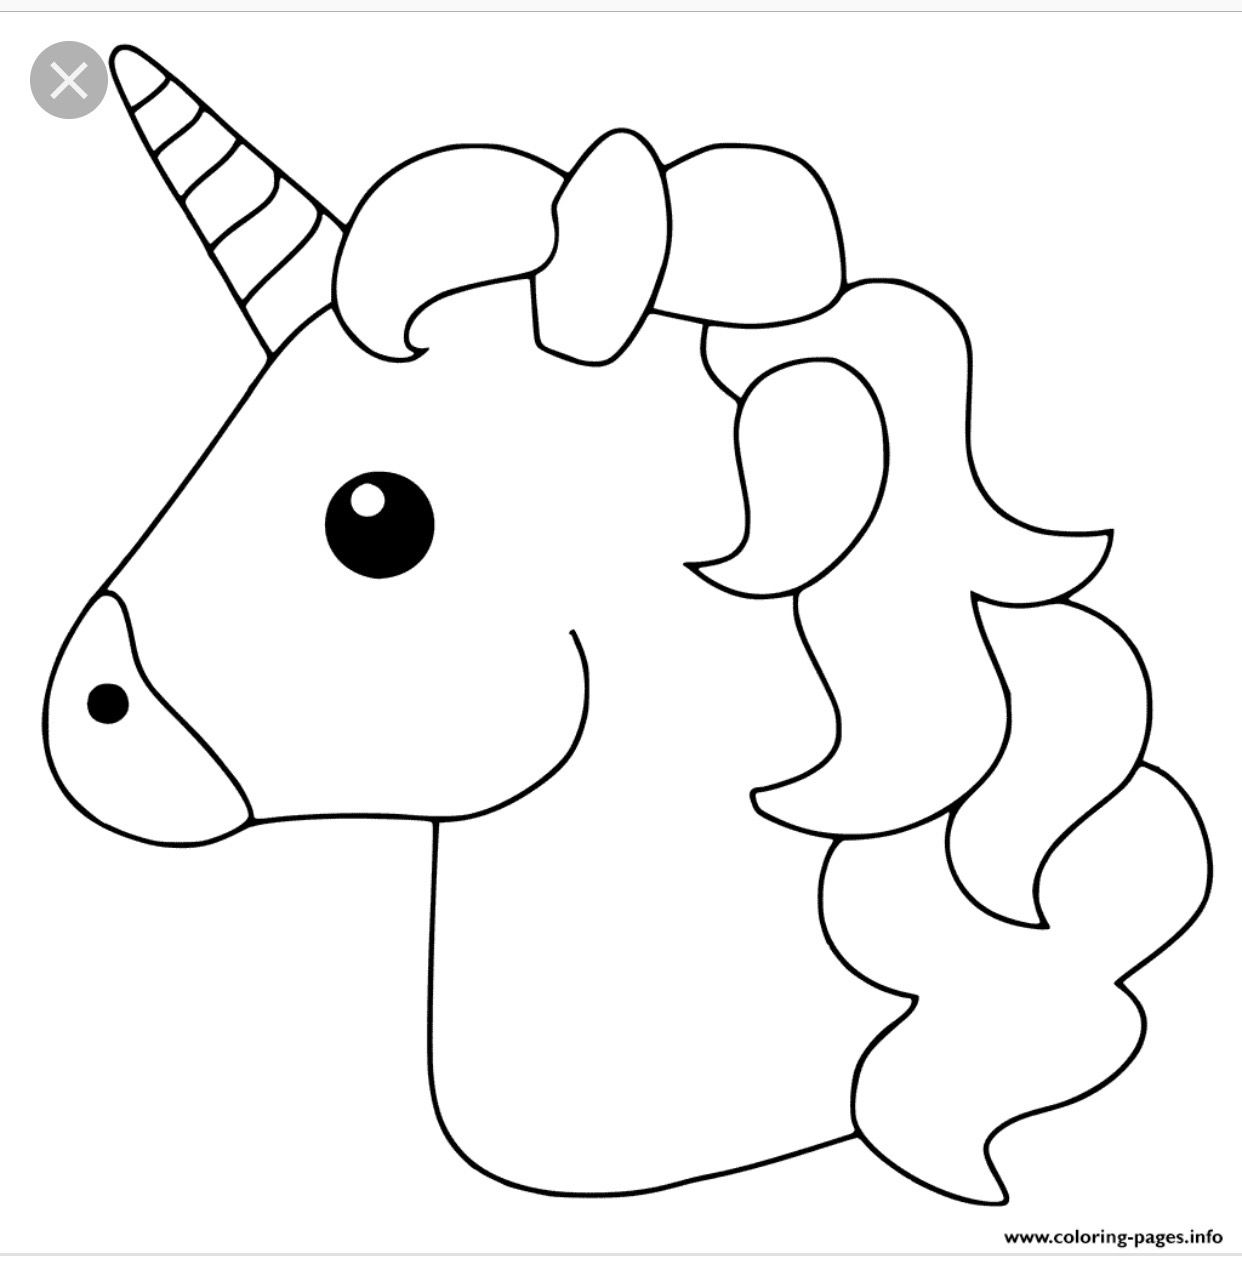 Pin By Color Me Mine Schaumburg On Coloring Book Unicorn Coloring Pages Emoji Coloring Pages Free Printable Coloring